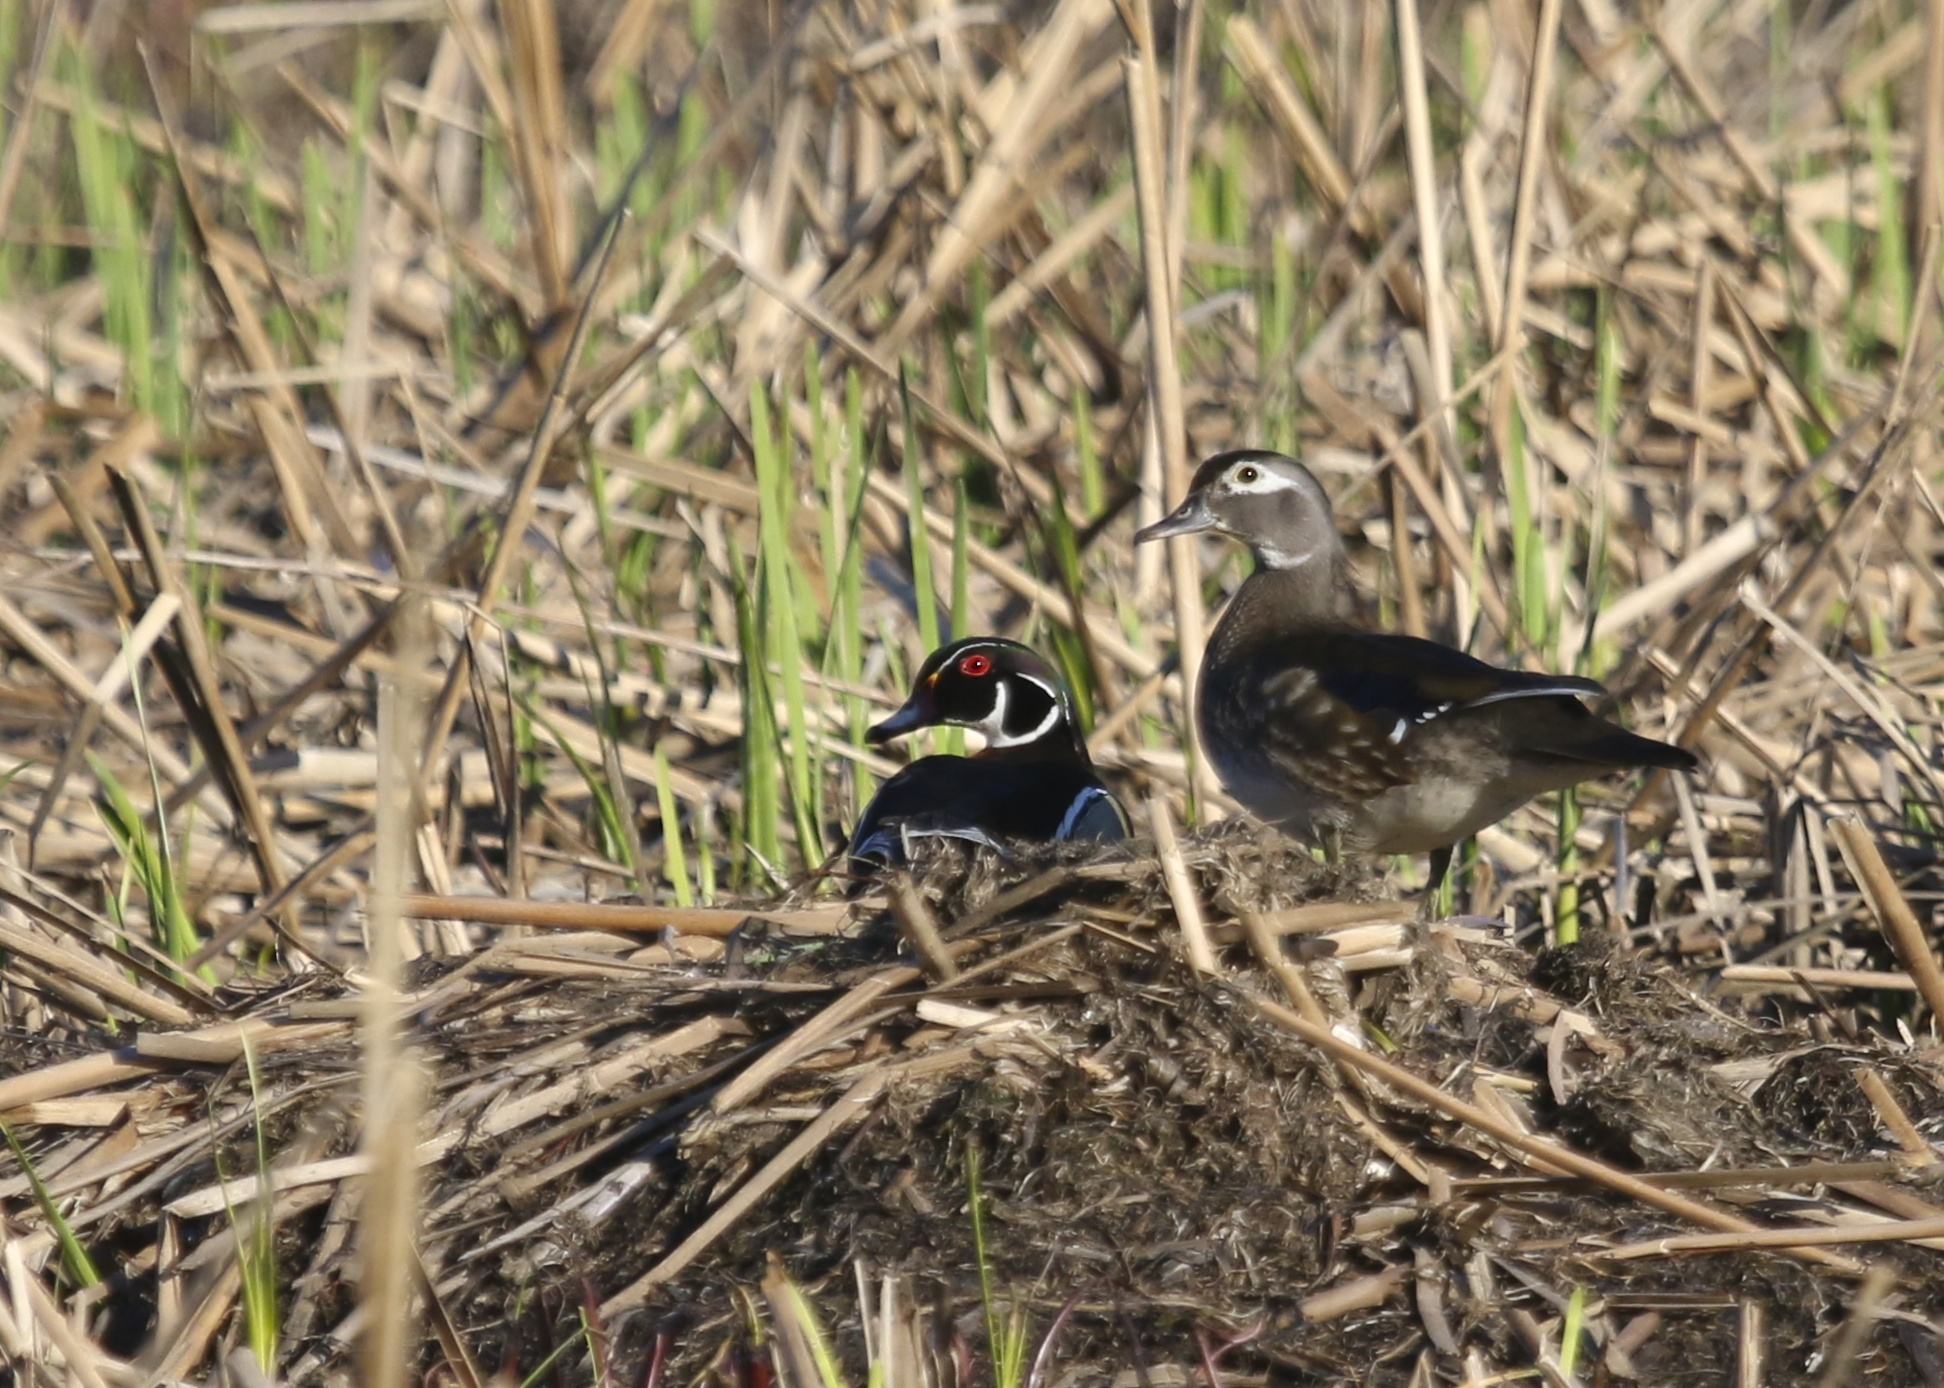 A pair of Wood Ducks at the Bashakill WMA, 4/24/14.